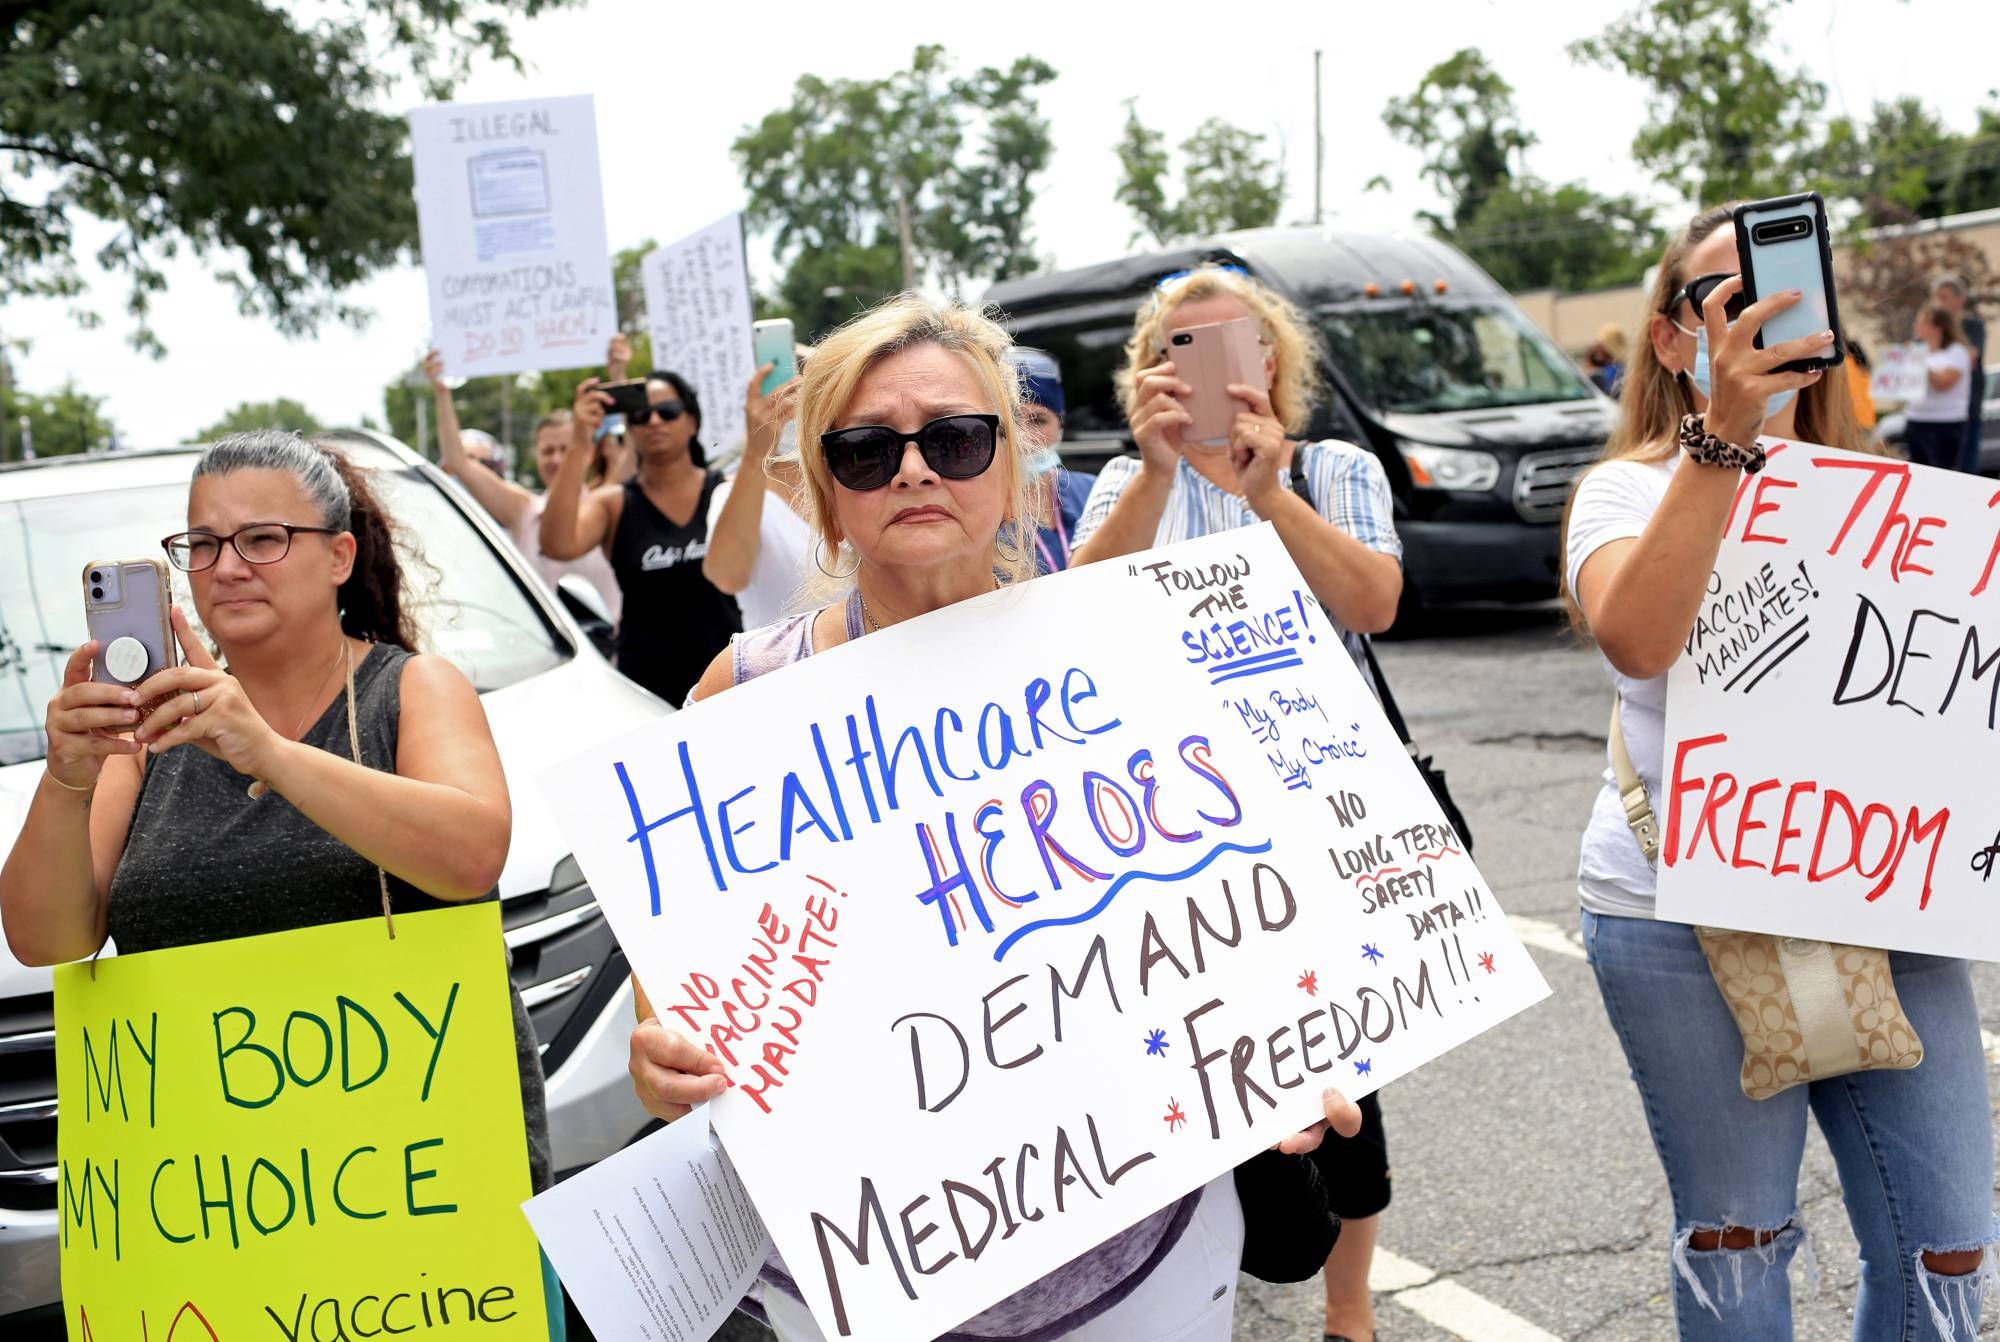 People protest vaccine mandates for health care workers at Staten Island University Hospital in Staten Island, New York, on Aug. 16.   YANA PASKOVA / THE NEW YORK TIMES